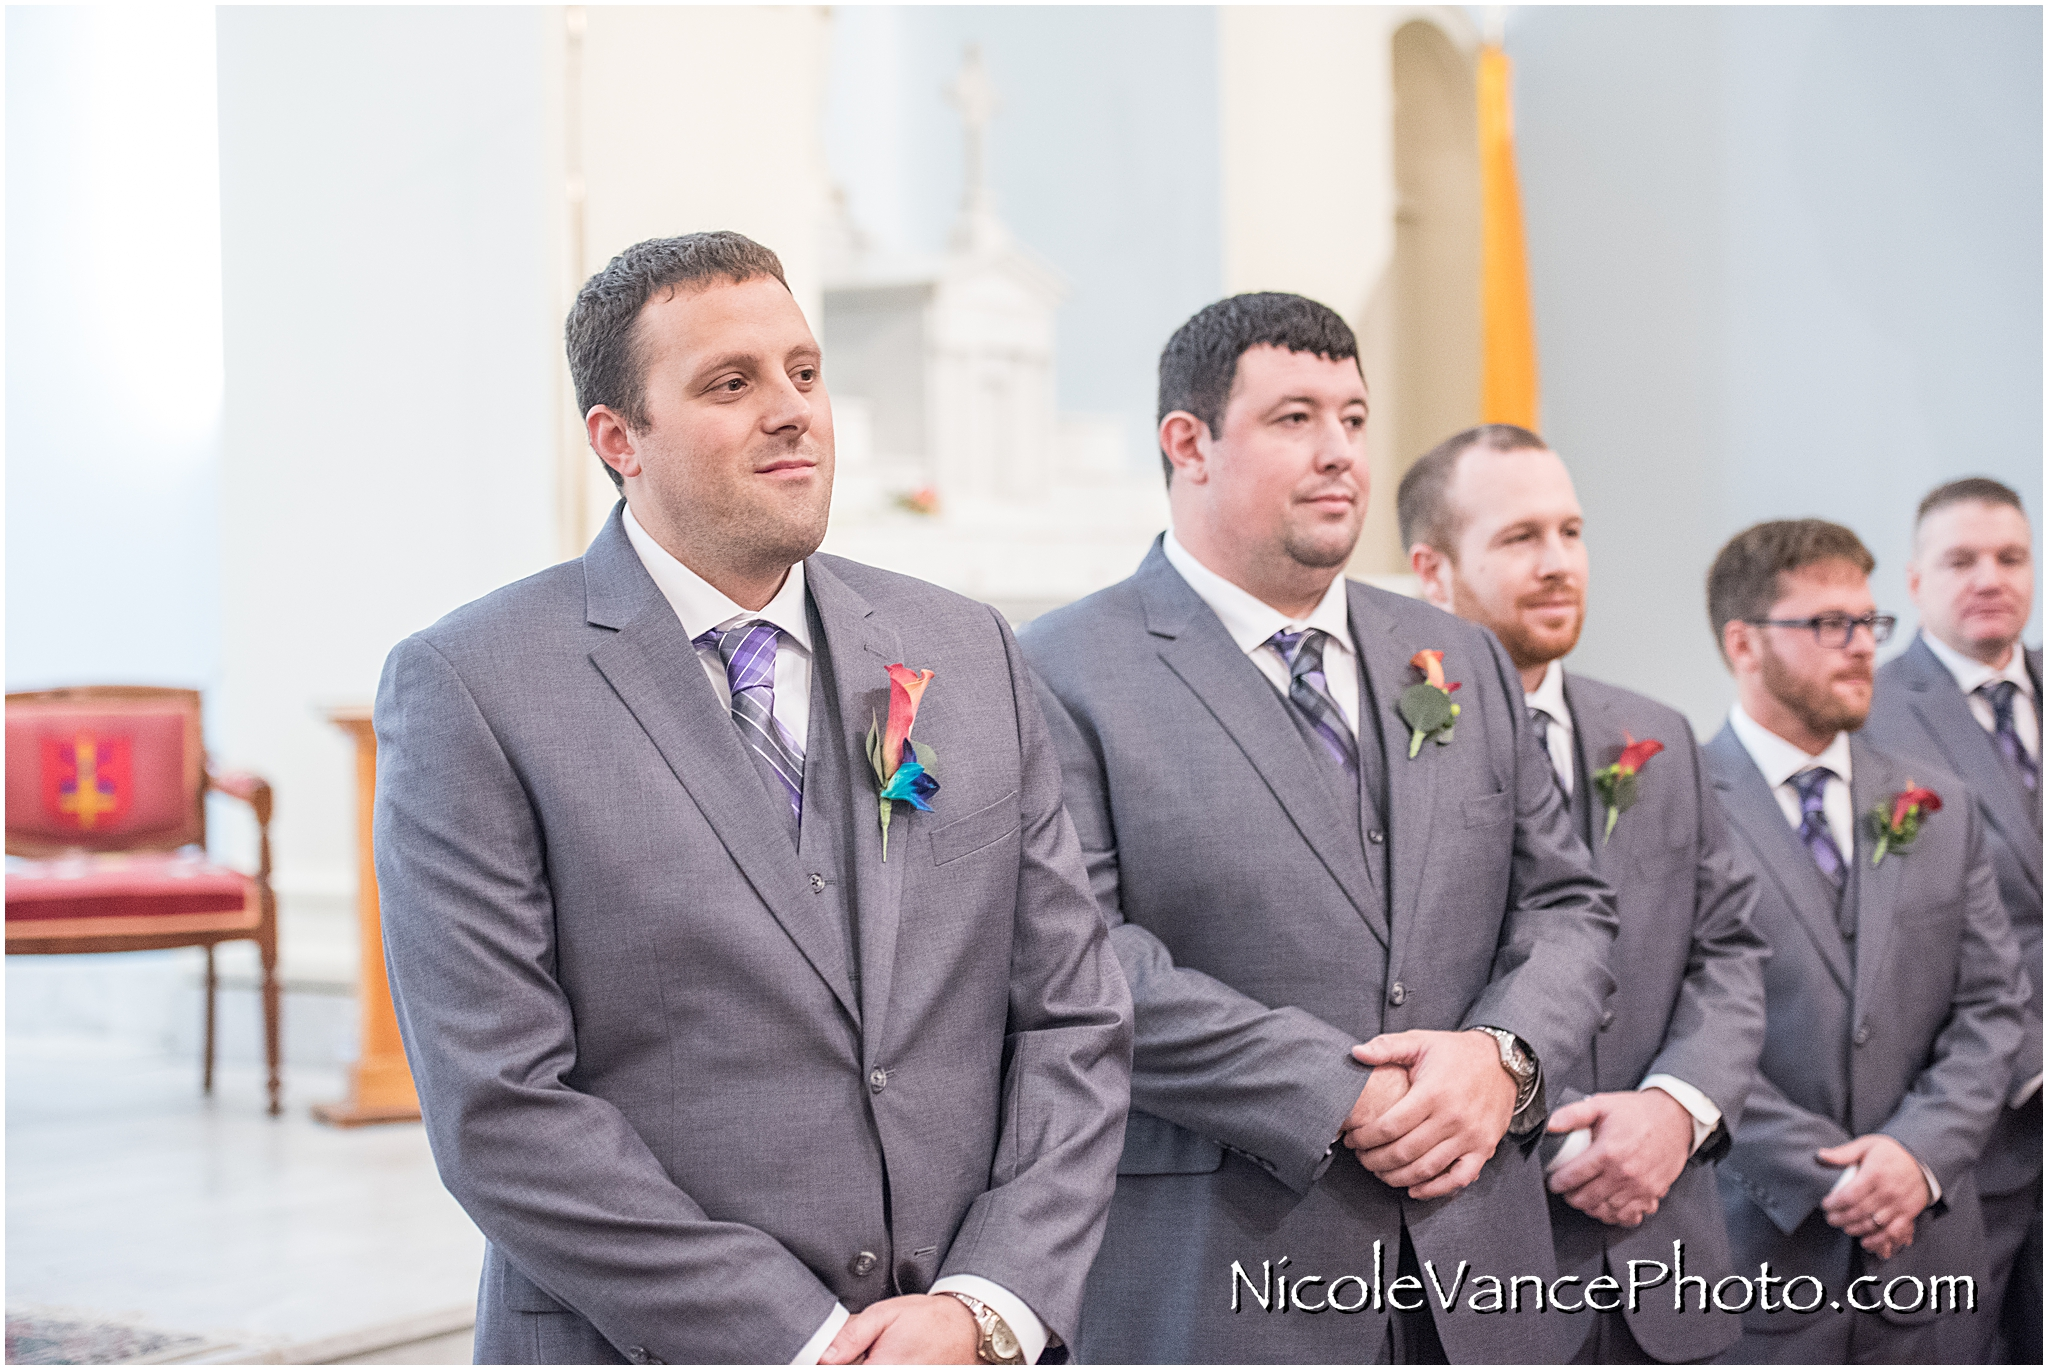 The groom sees his bride enter at St Peter's Catholic Church, in Richmond VA.